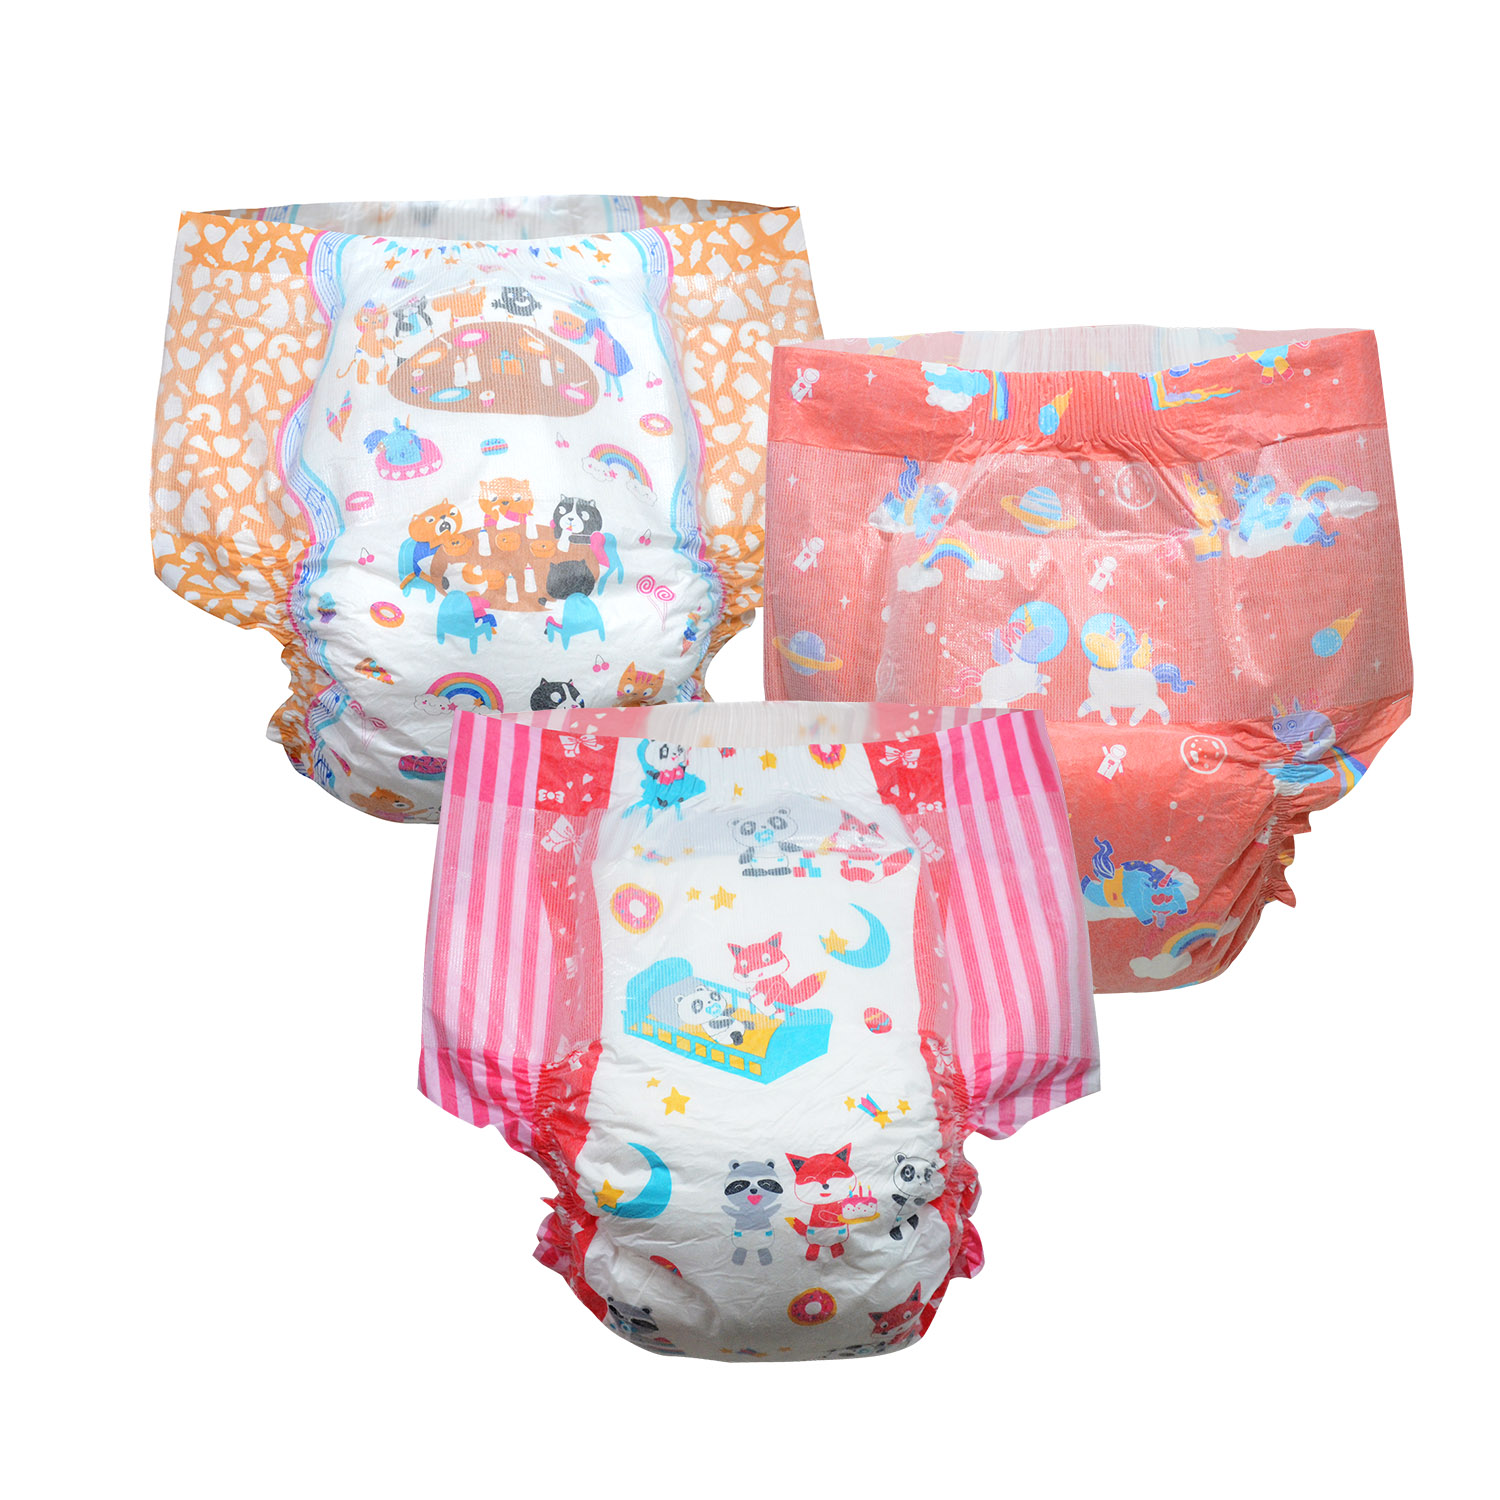 Rainbow Week Diaper ABDL Boy Girl Adult Size Diaper 6000ml Absorbtive Elastic Waistline DDLG Diaper Dummy Dom 6pcs In A Pack